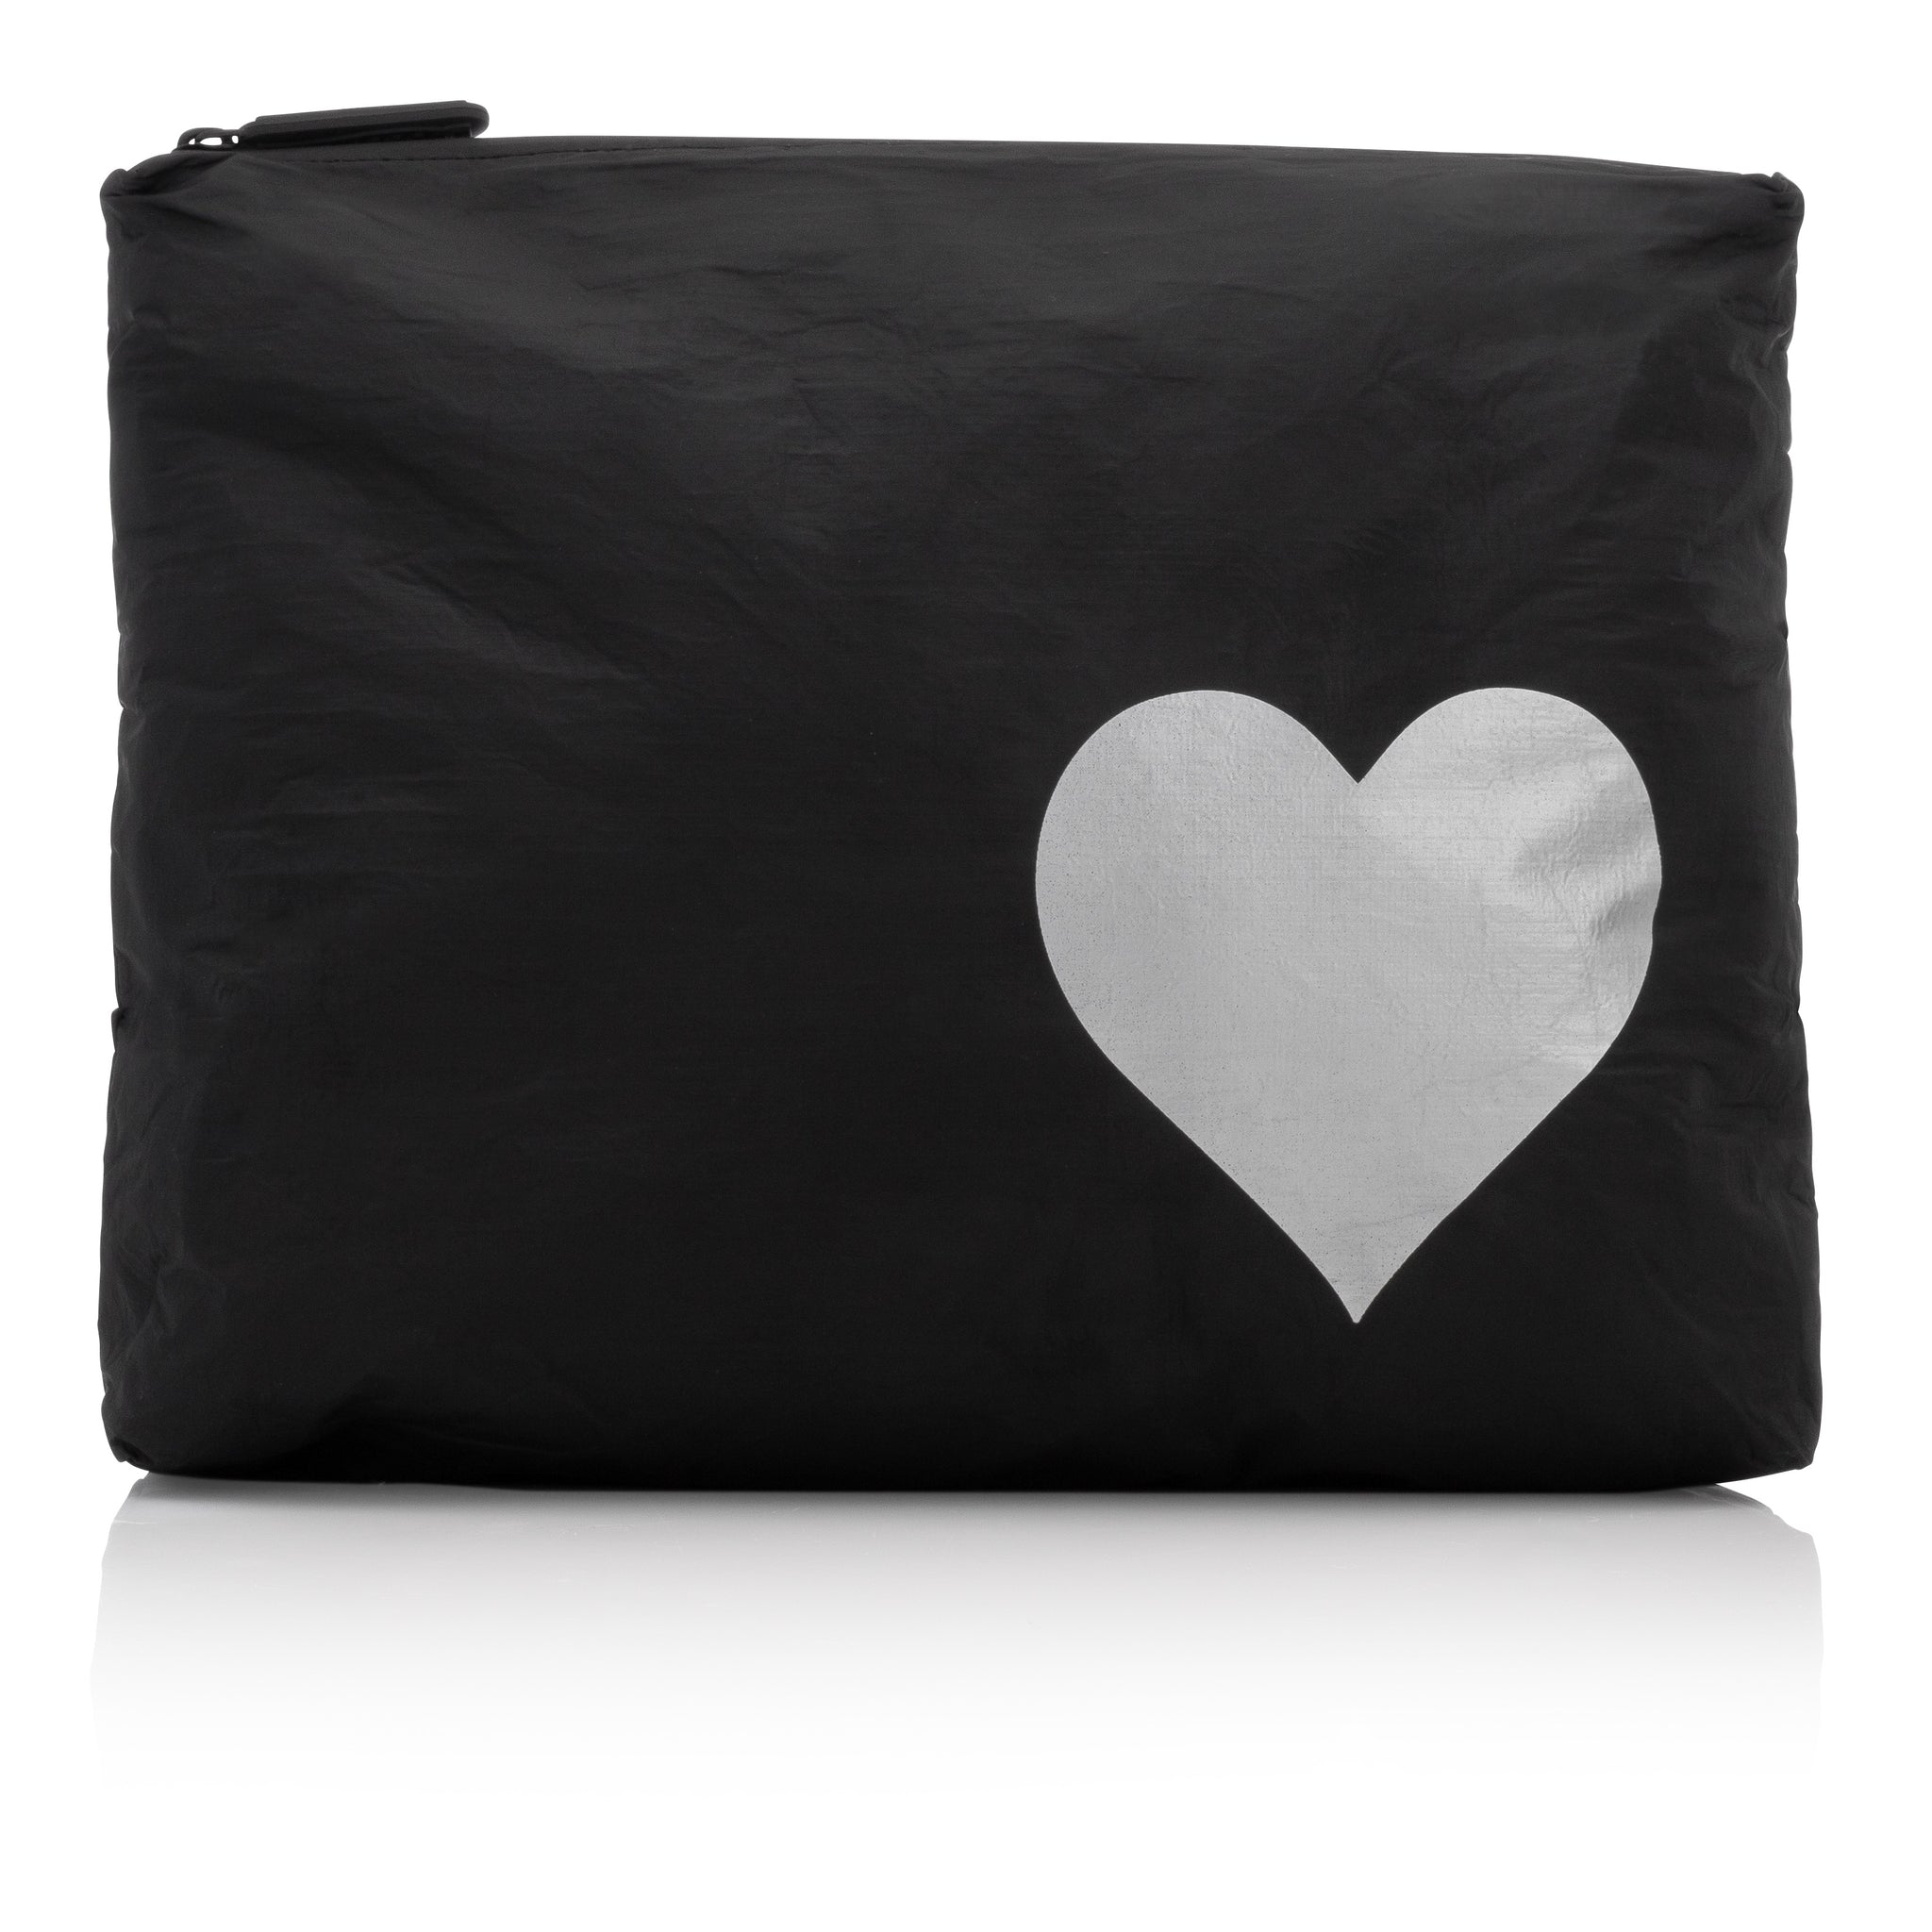 Medium Pack - Black HLT Collection with Metallic Silver Heart